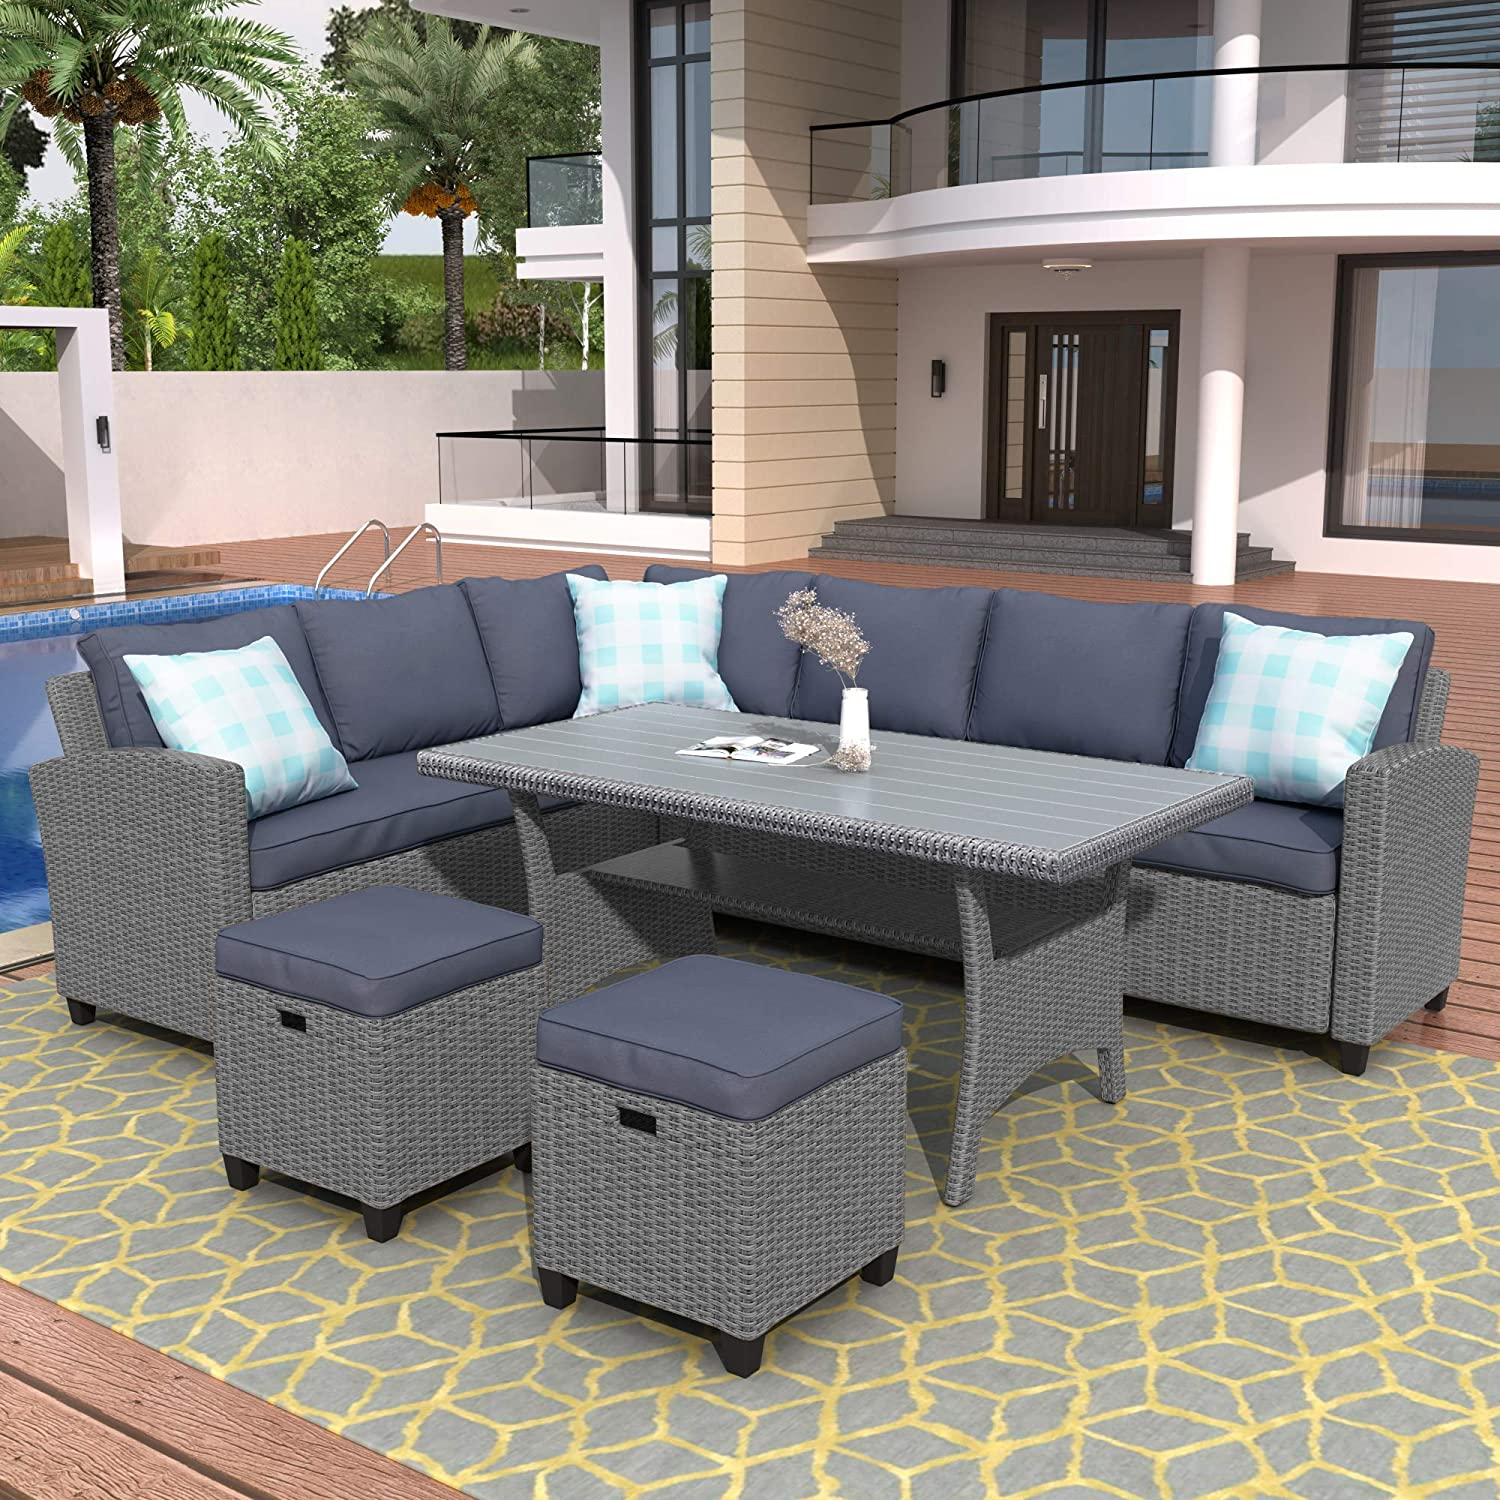 Merax Patio Dining Sets, Outdoor Conversation Set All Weather Wicker Rattan  Sectional Sofa Dining Table Chairs Set with 9 Ottoman Grey Cushion